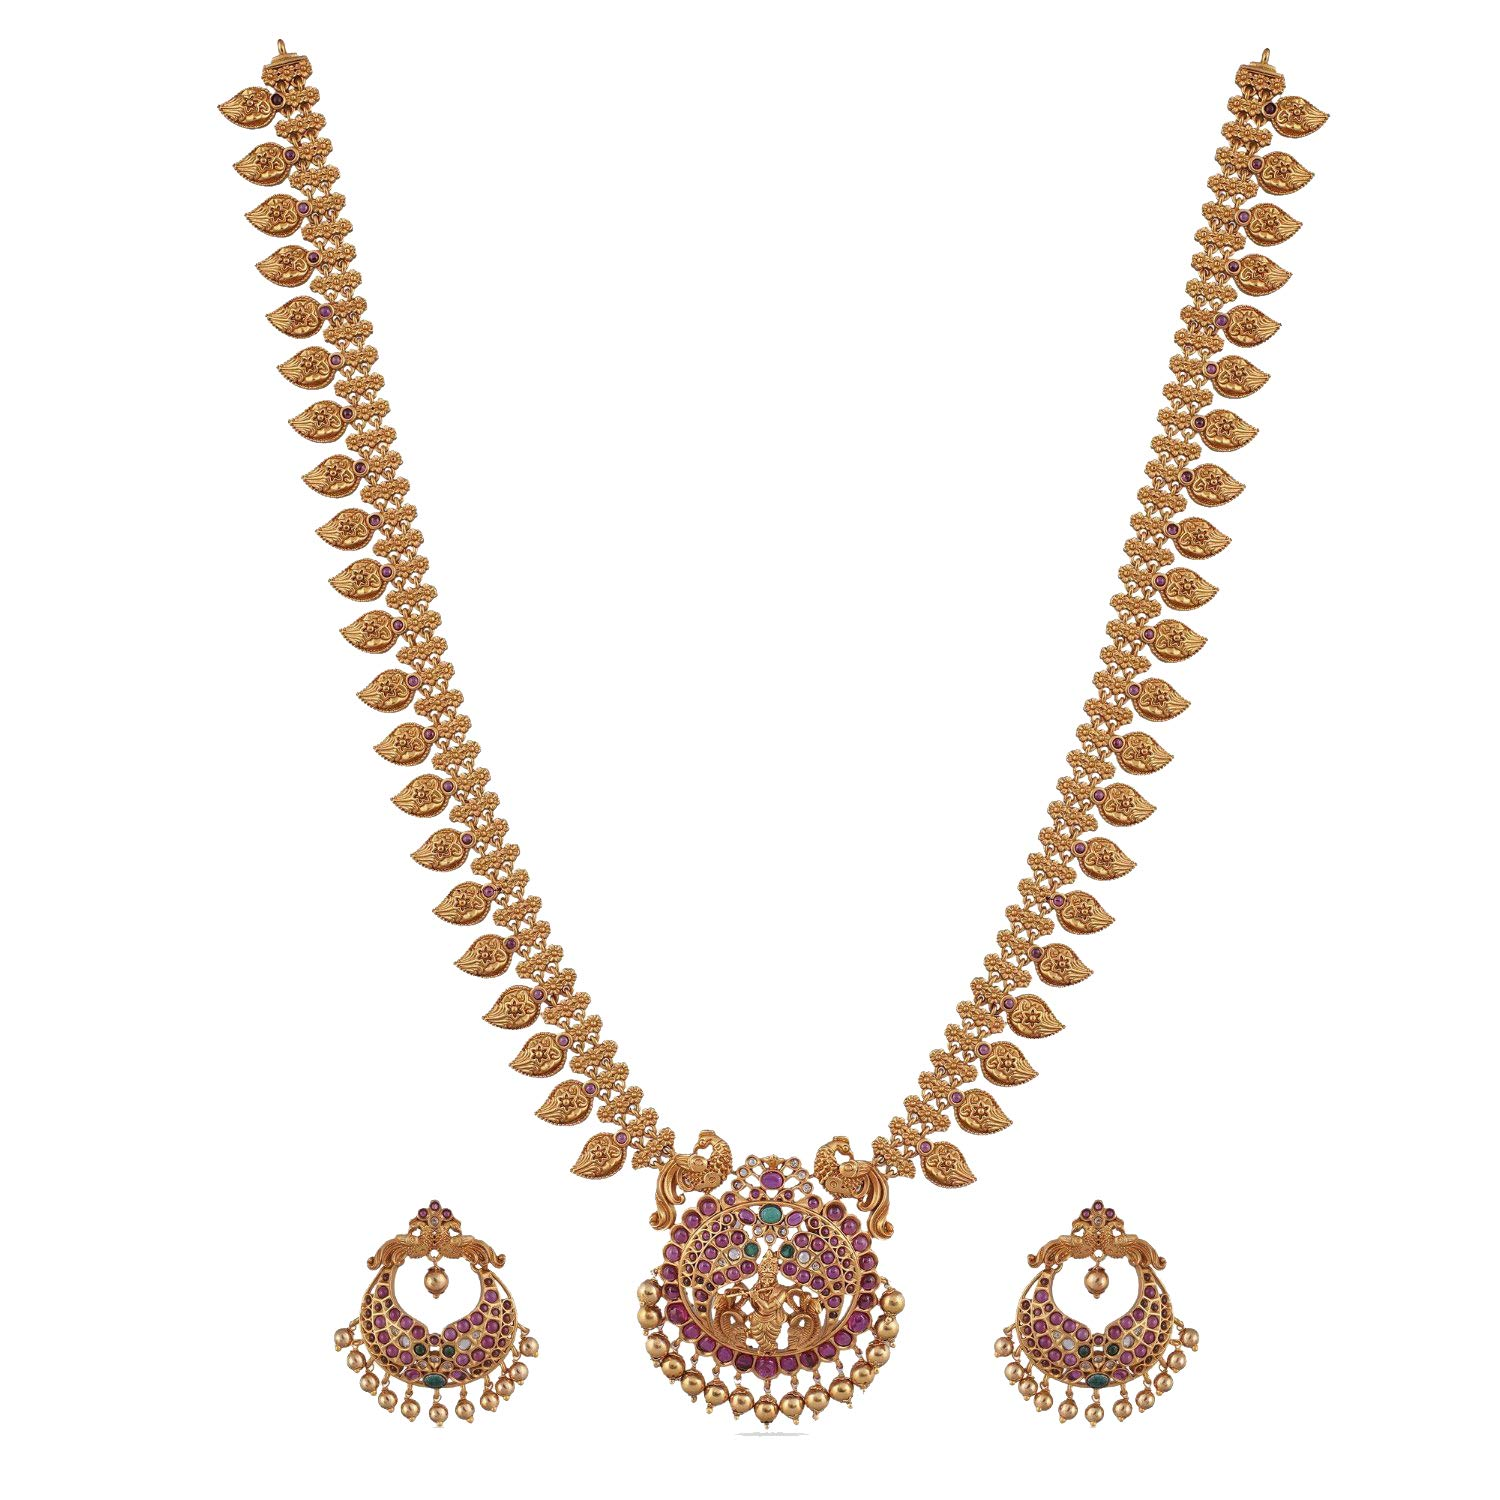 Tarinika Gita Gold-Plated Indian Jewelry Set with Long Necklace and Earrings - White Red Green